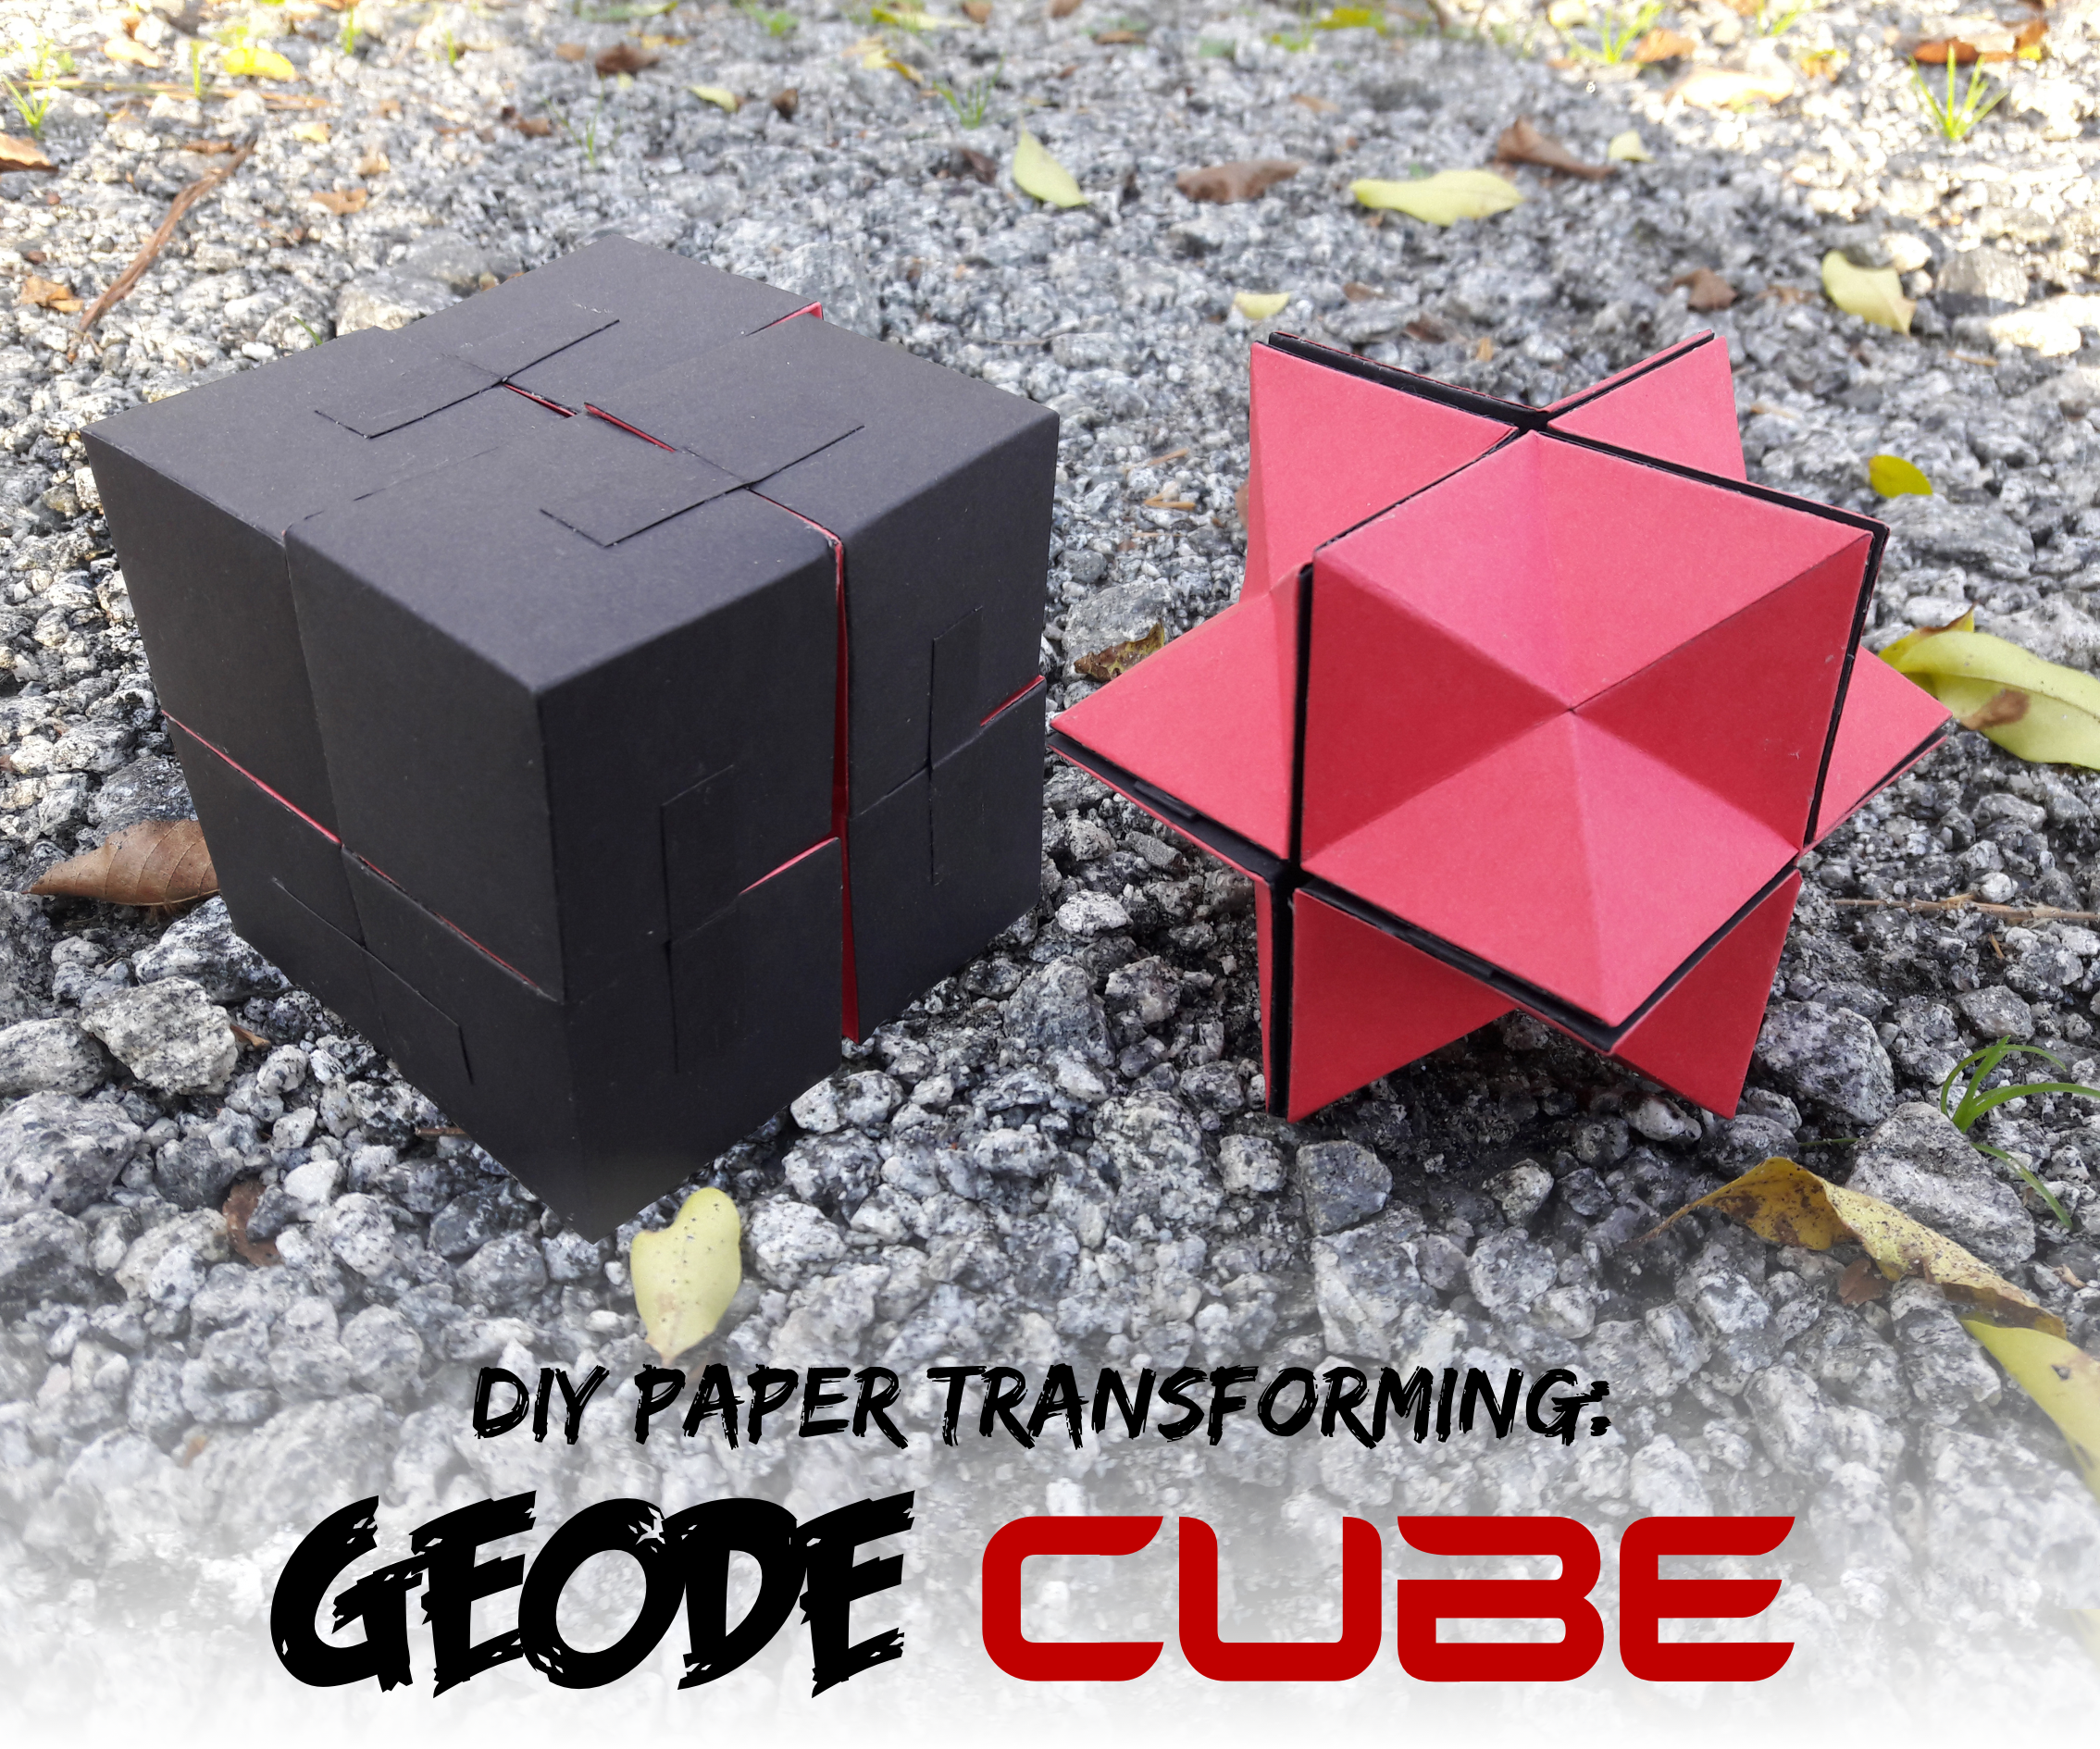 Make a Paper Transforming Geode Cube - Design and Template